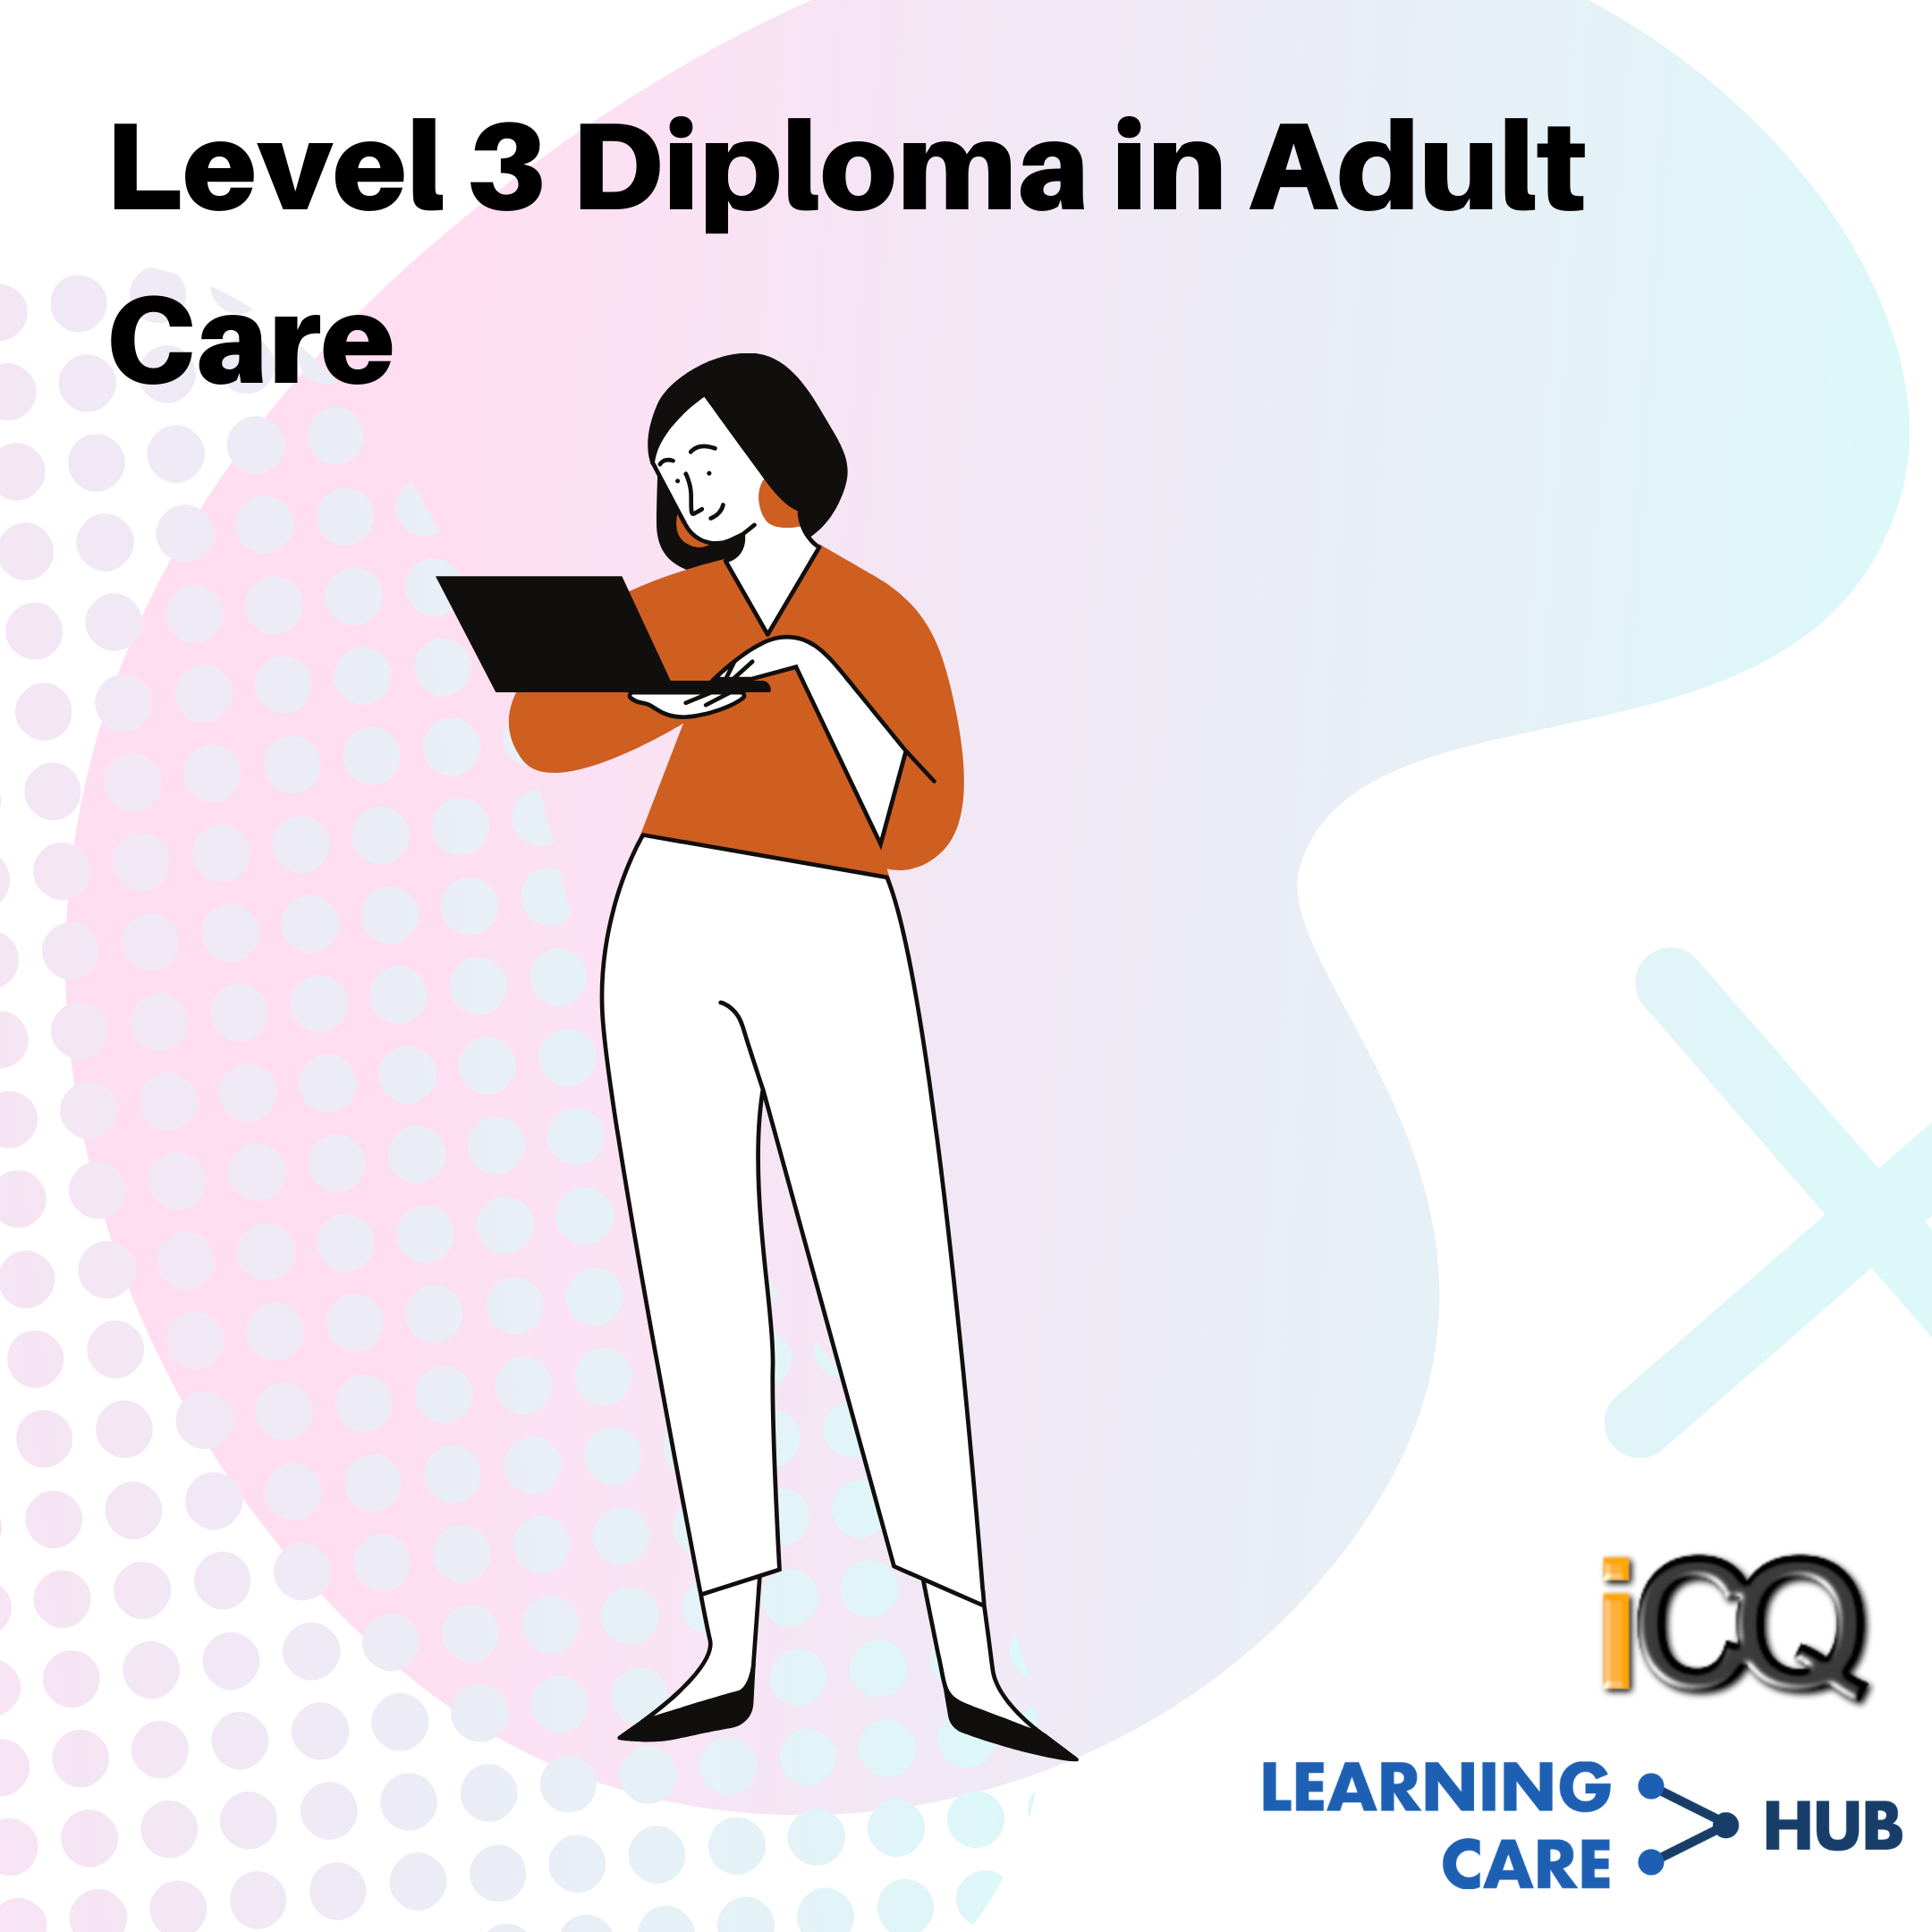 Level 3 Diploma in Adult Care (ICQ)